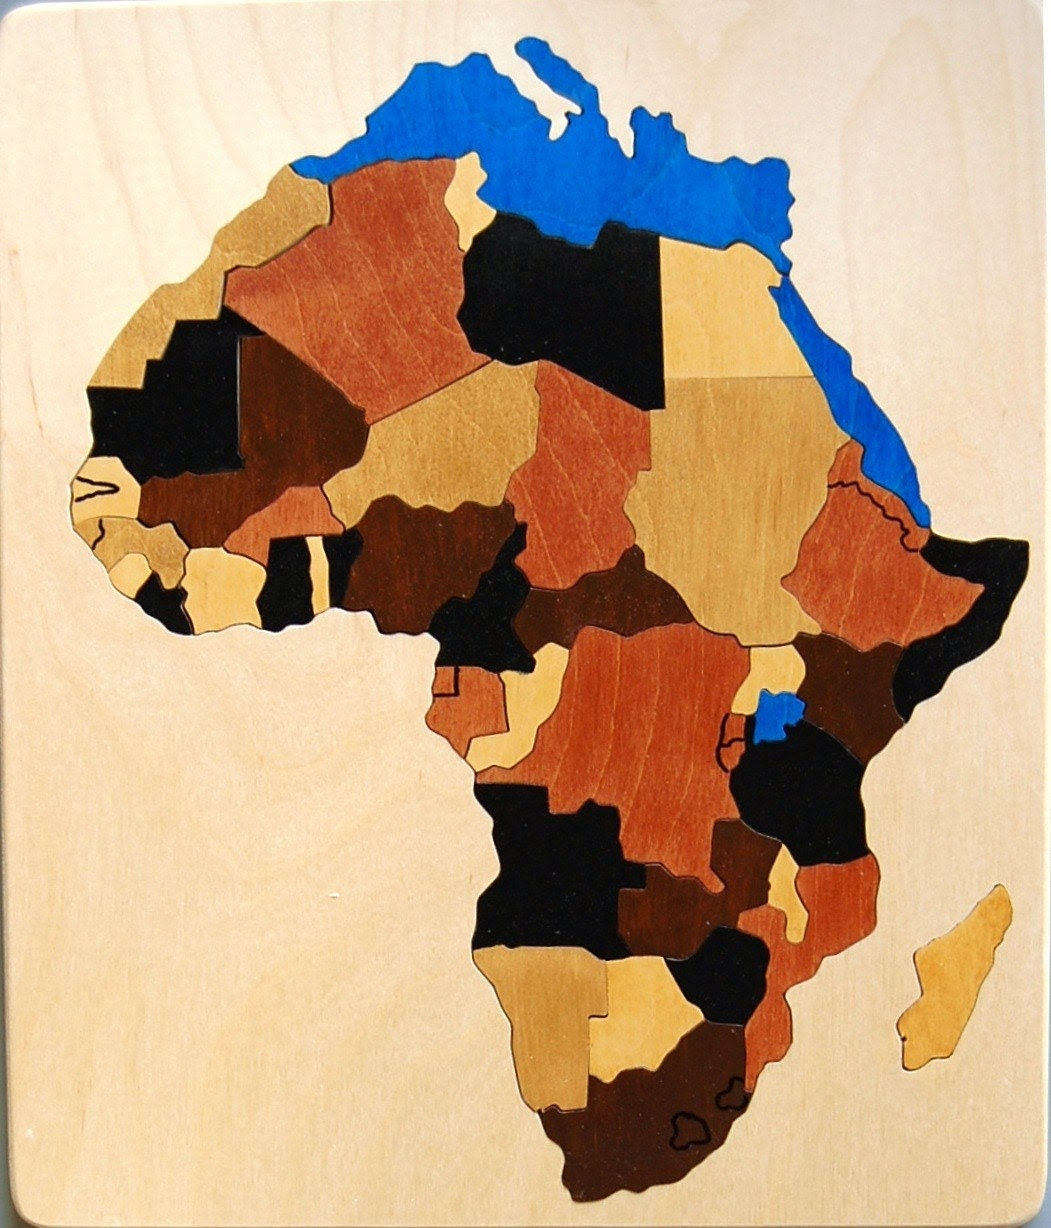 Wooden Map Puzzle of Africa